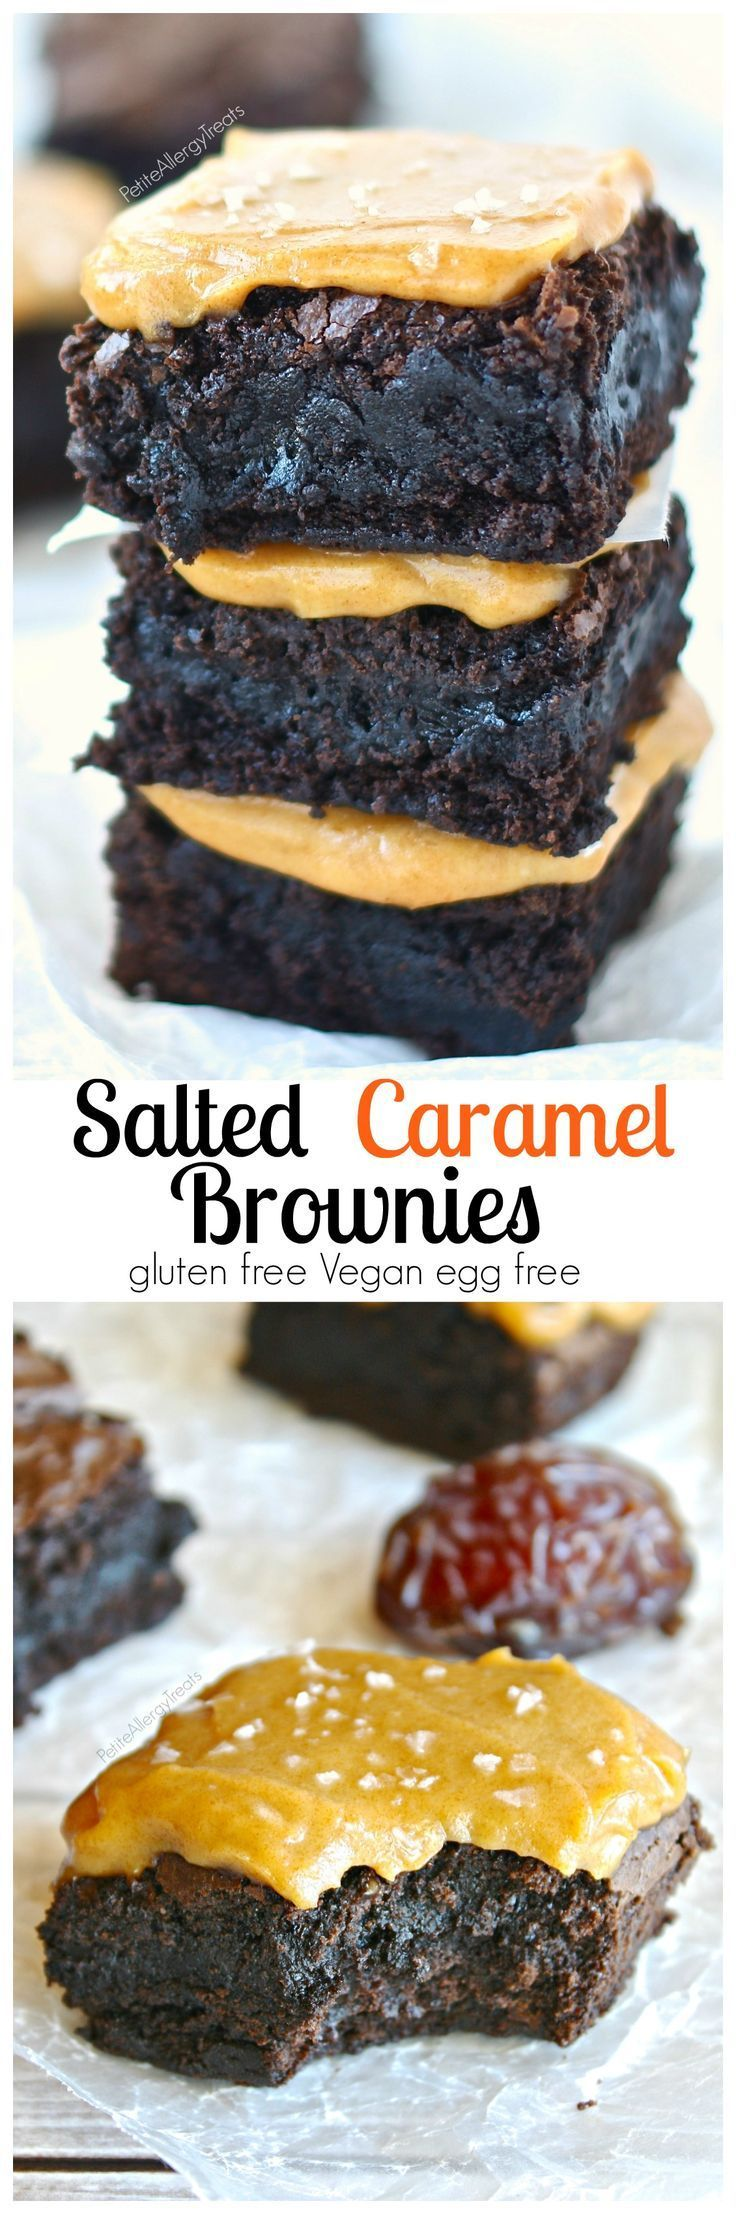 Gluten Free Salted Caramel Brownies (Vegan) Fudgy brownies covered with sweet and salty caramel sauce! Dairy free easy caramel sauce #thanksgiving #givethanks #thankful #happythanksgiving #happyholidays #holidayplanning #planningforthanksgiving #harvest #fall #autumn #thanksgivingcrafts #thanksgivingdecor #thanksgivingrecipes http://www.gmichaelsalon.com